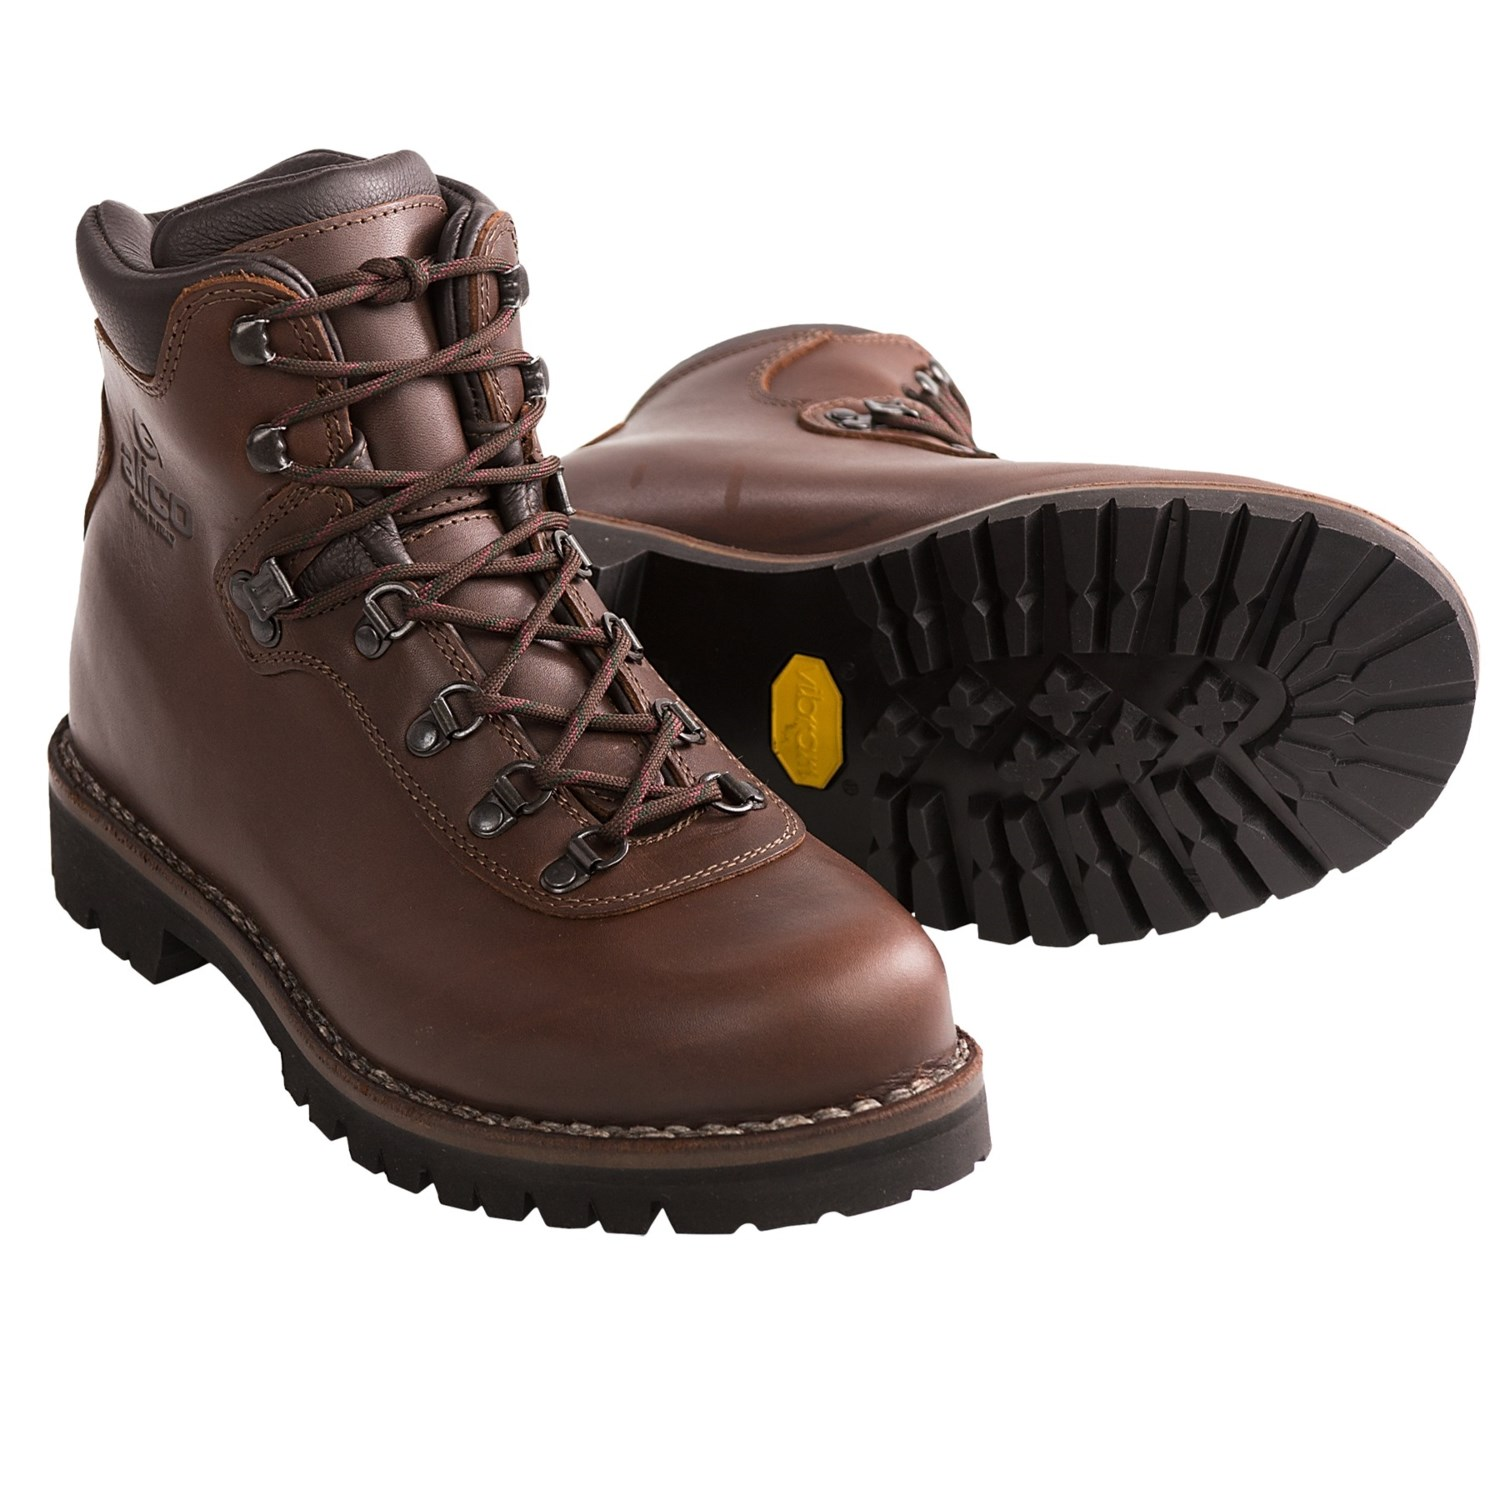 mens hiking boots with laces images